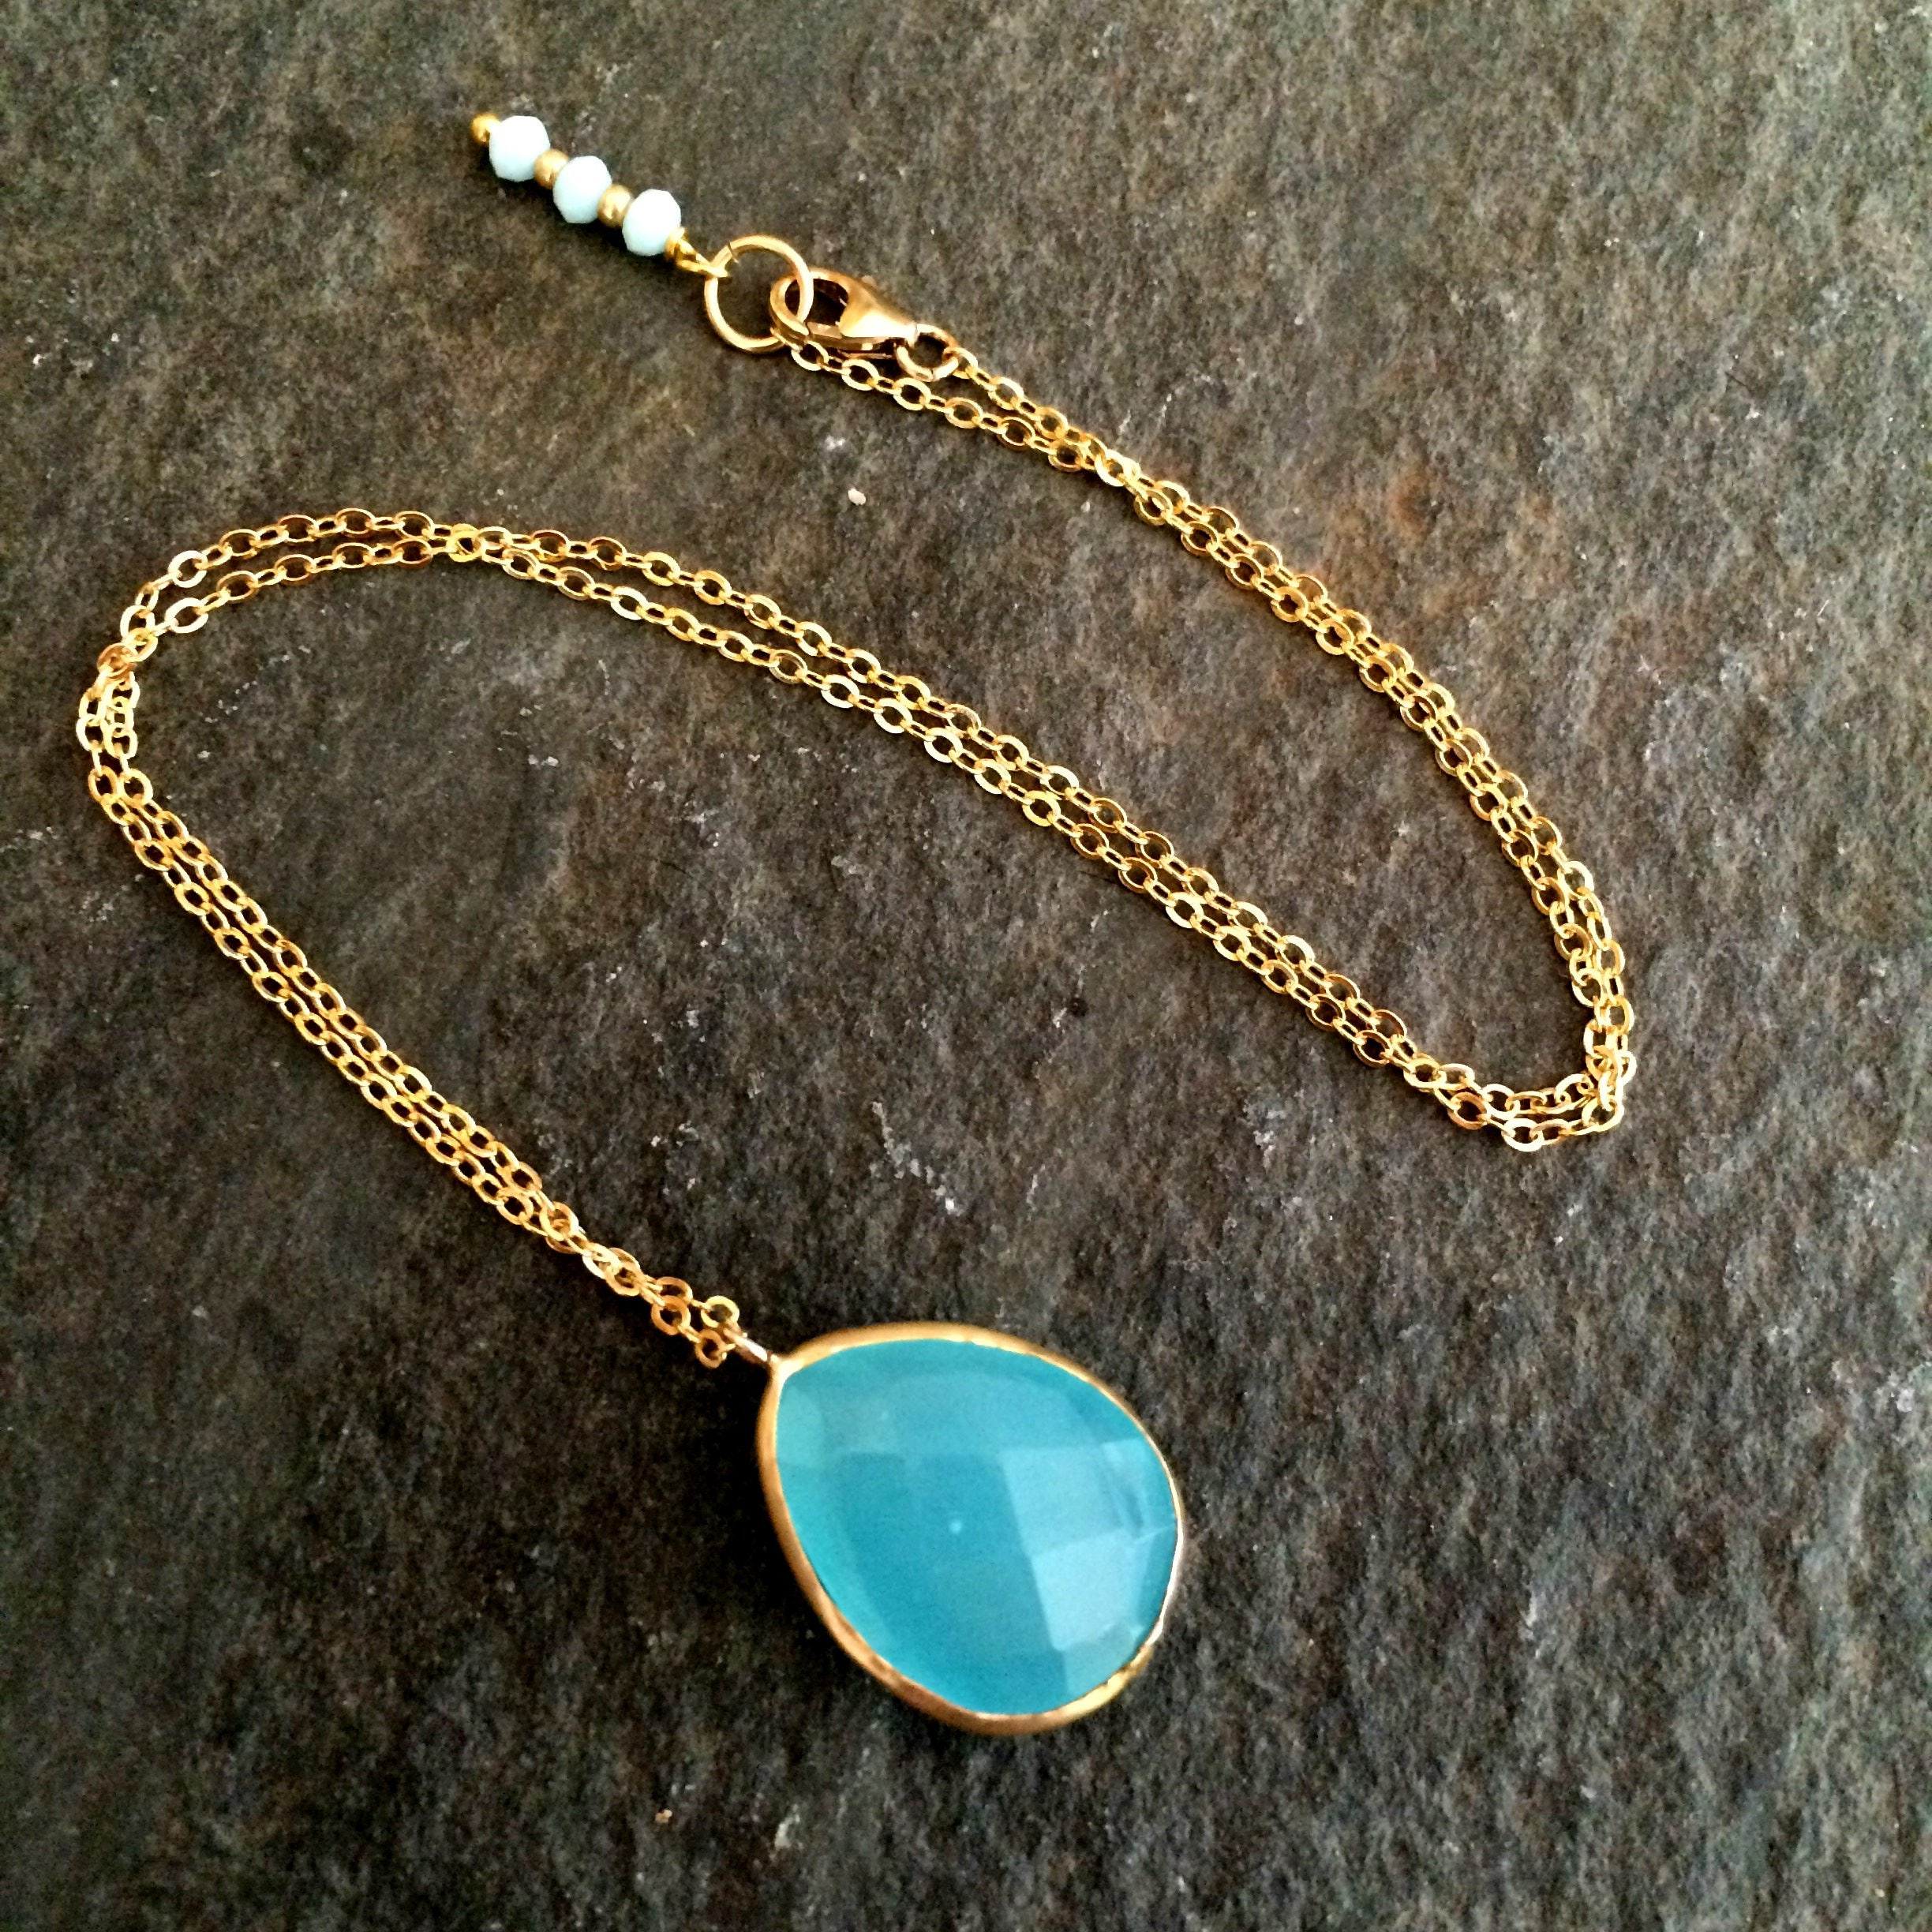 en necklaces water drop joyas chalcedony de venta online addictedto pendant